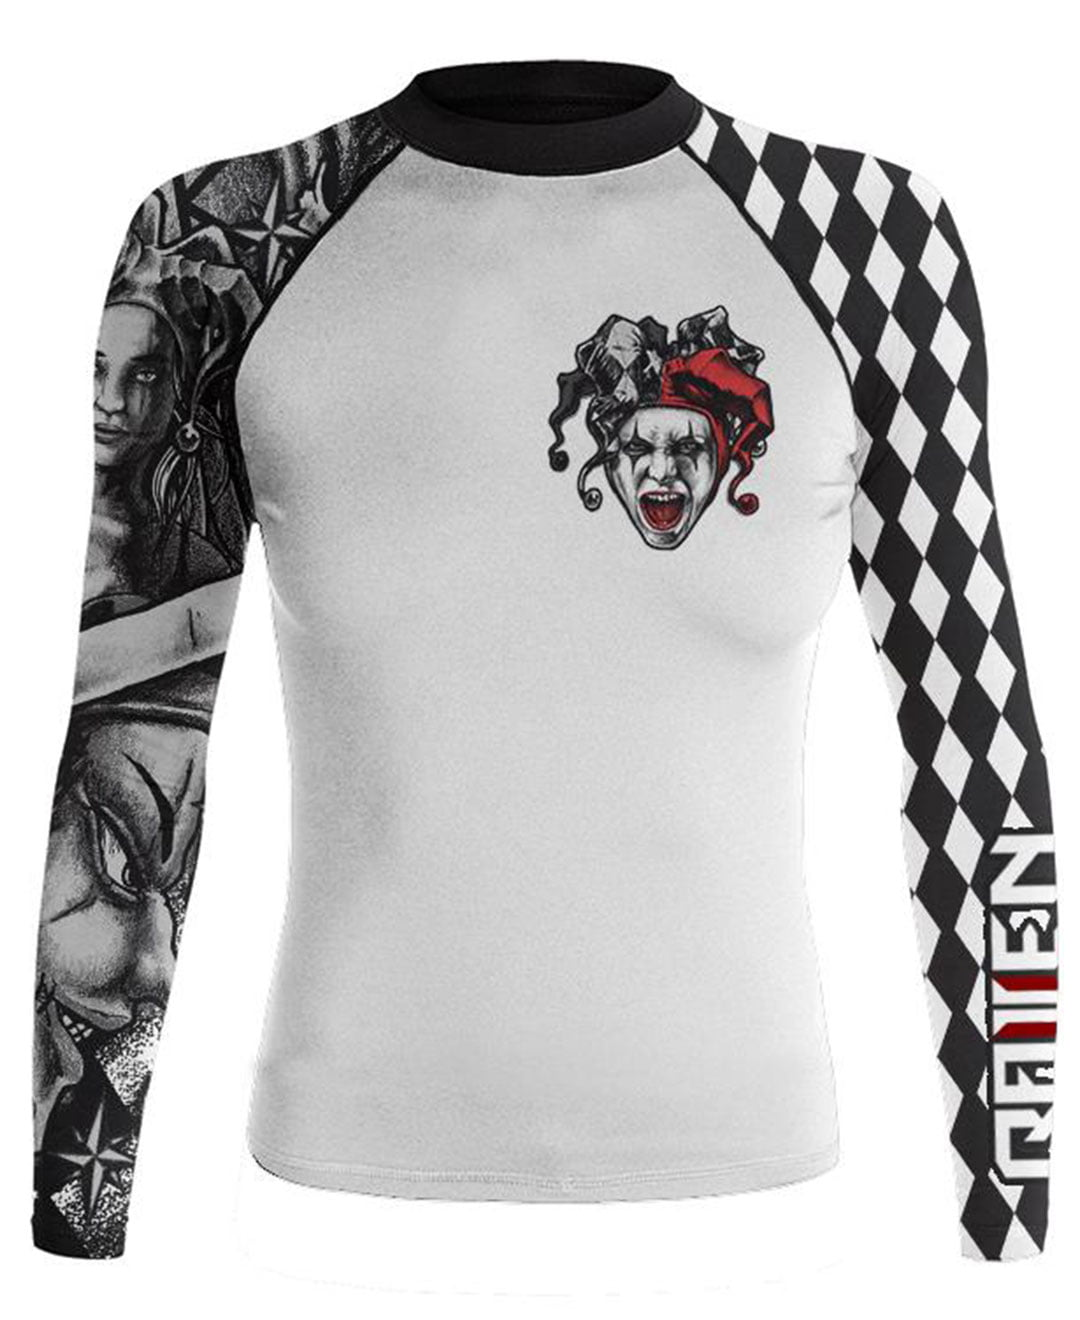 Raven Fightwear Women's The Harlequin Serenity Rash Guard MMA BJJ White by Raven Fightwear